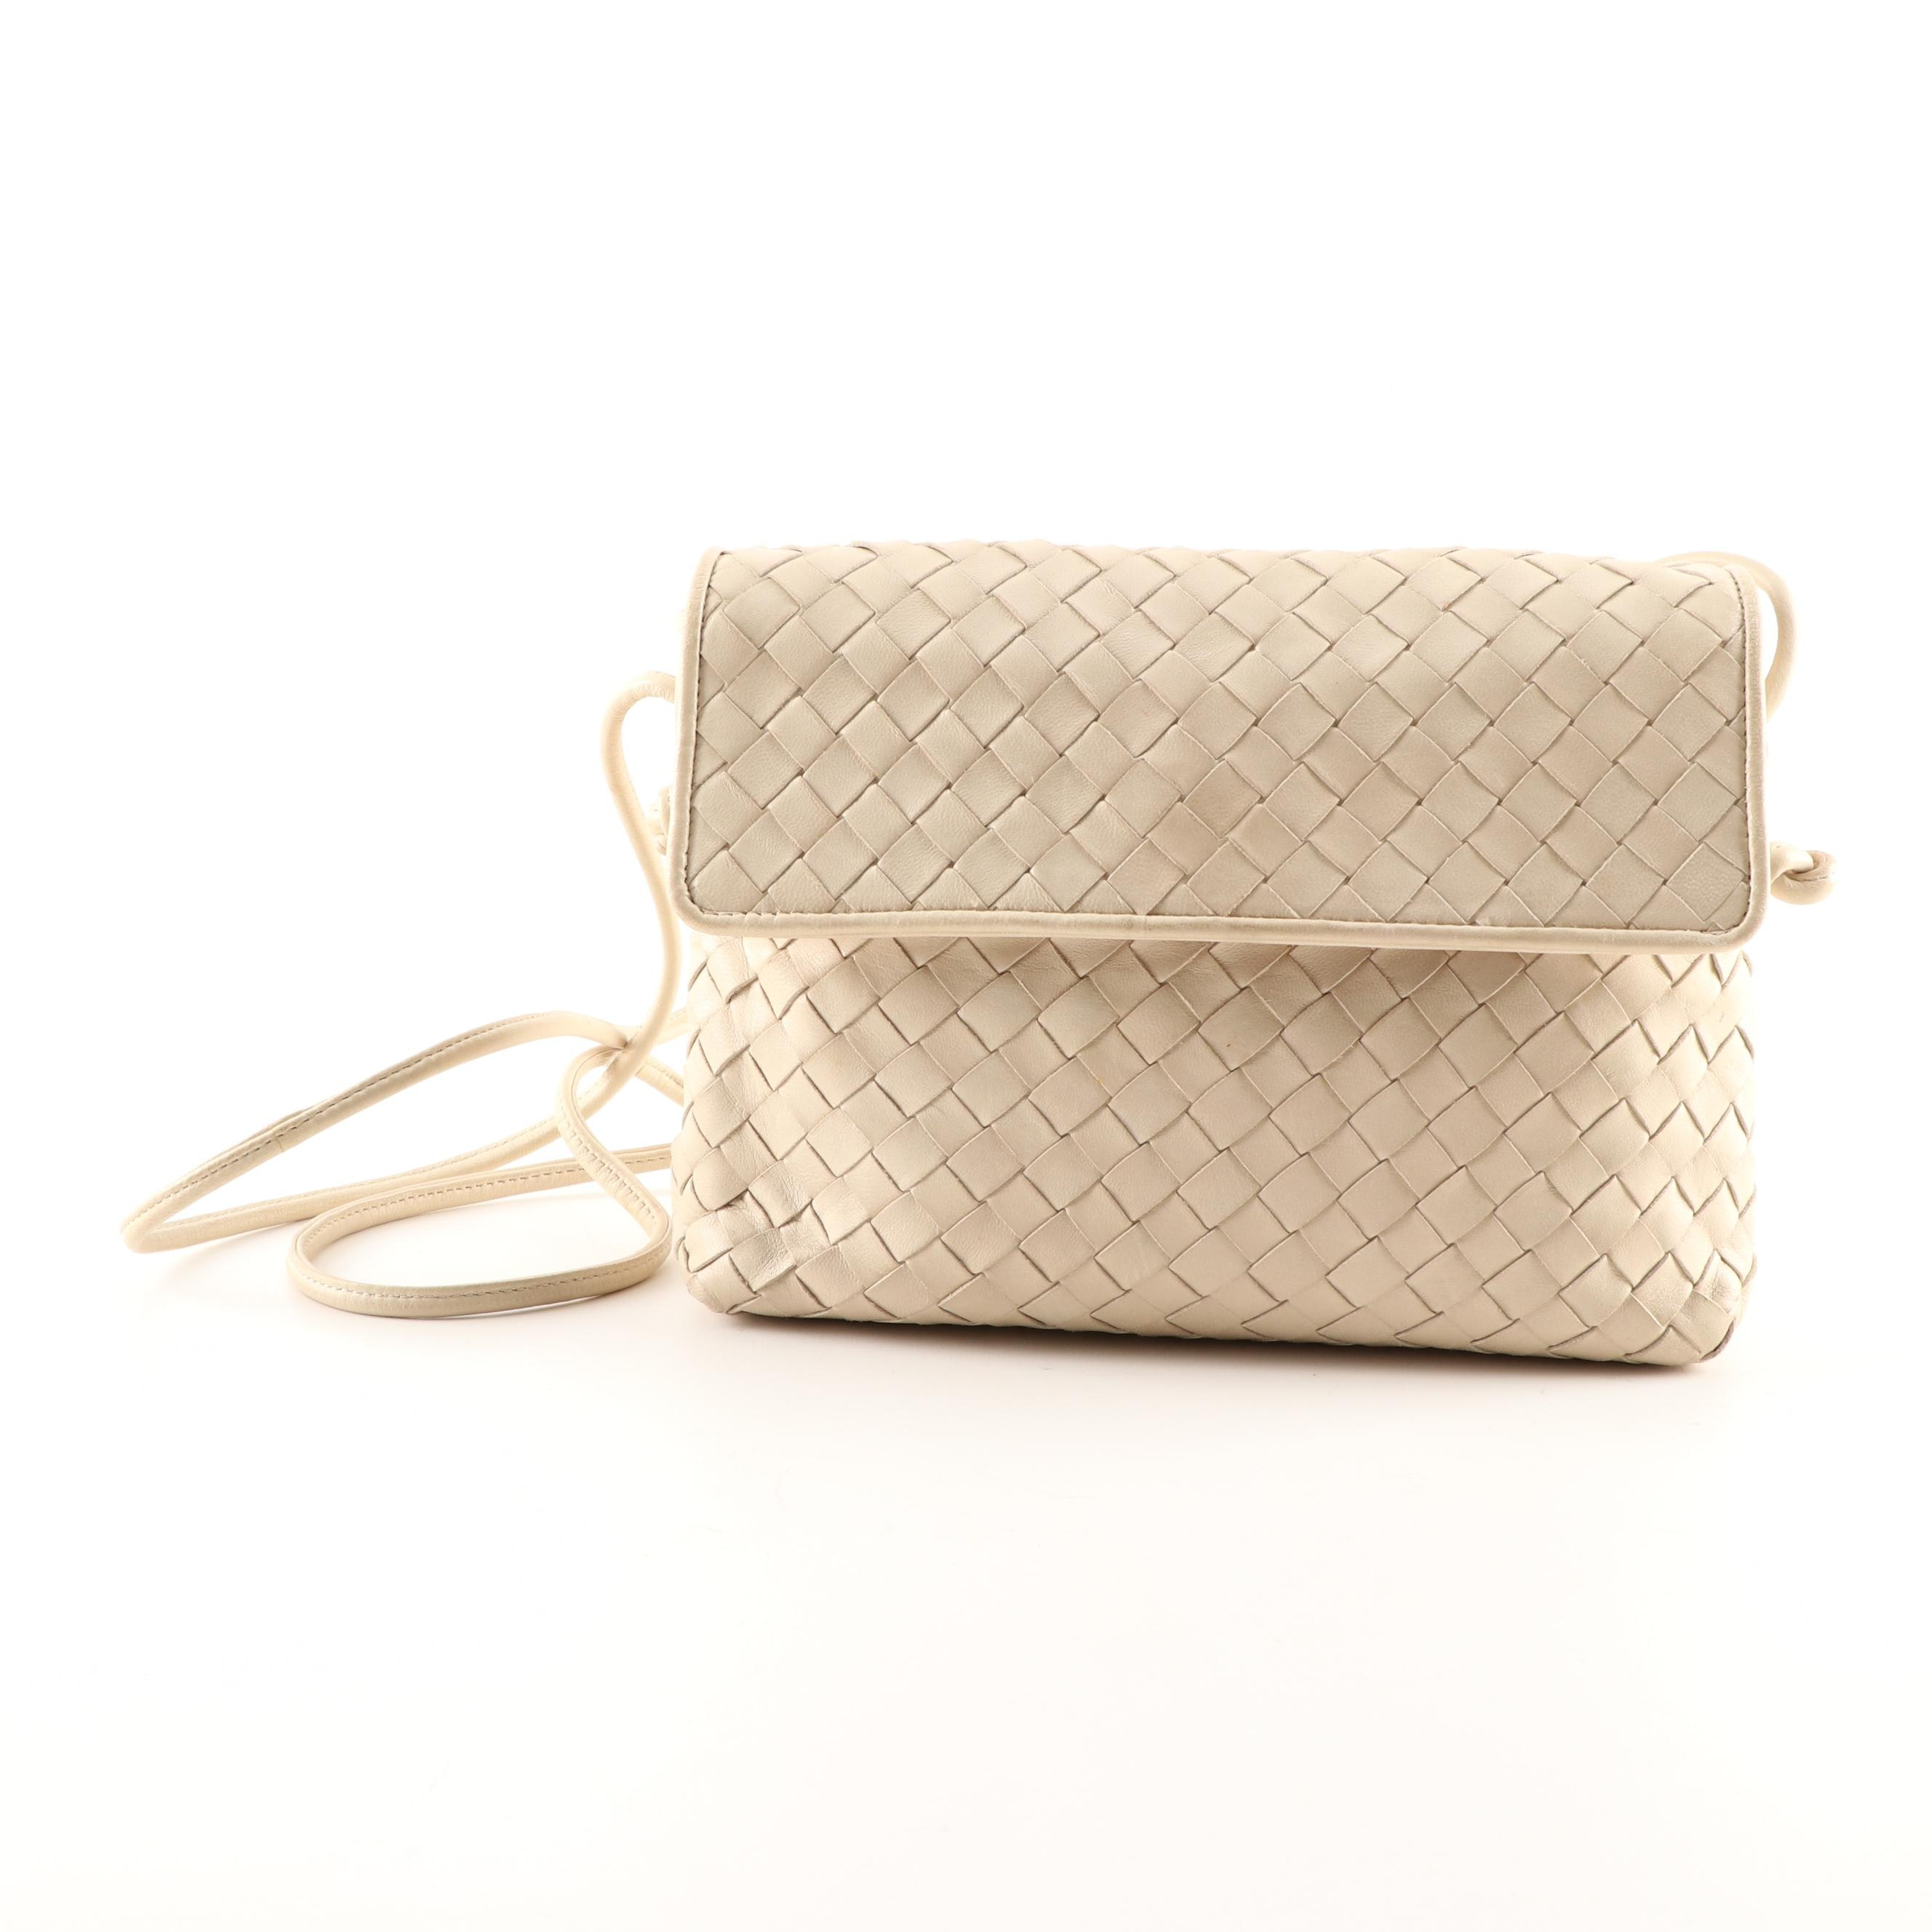 Bottega Veneta Beige Intrecciato Woven Leather Crossbody Bag, Made in Italy